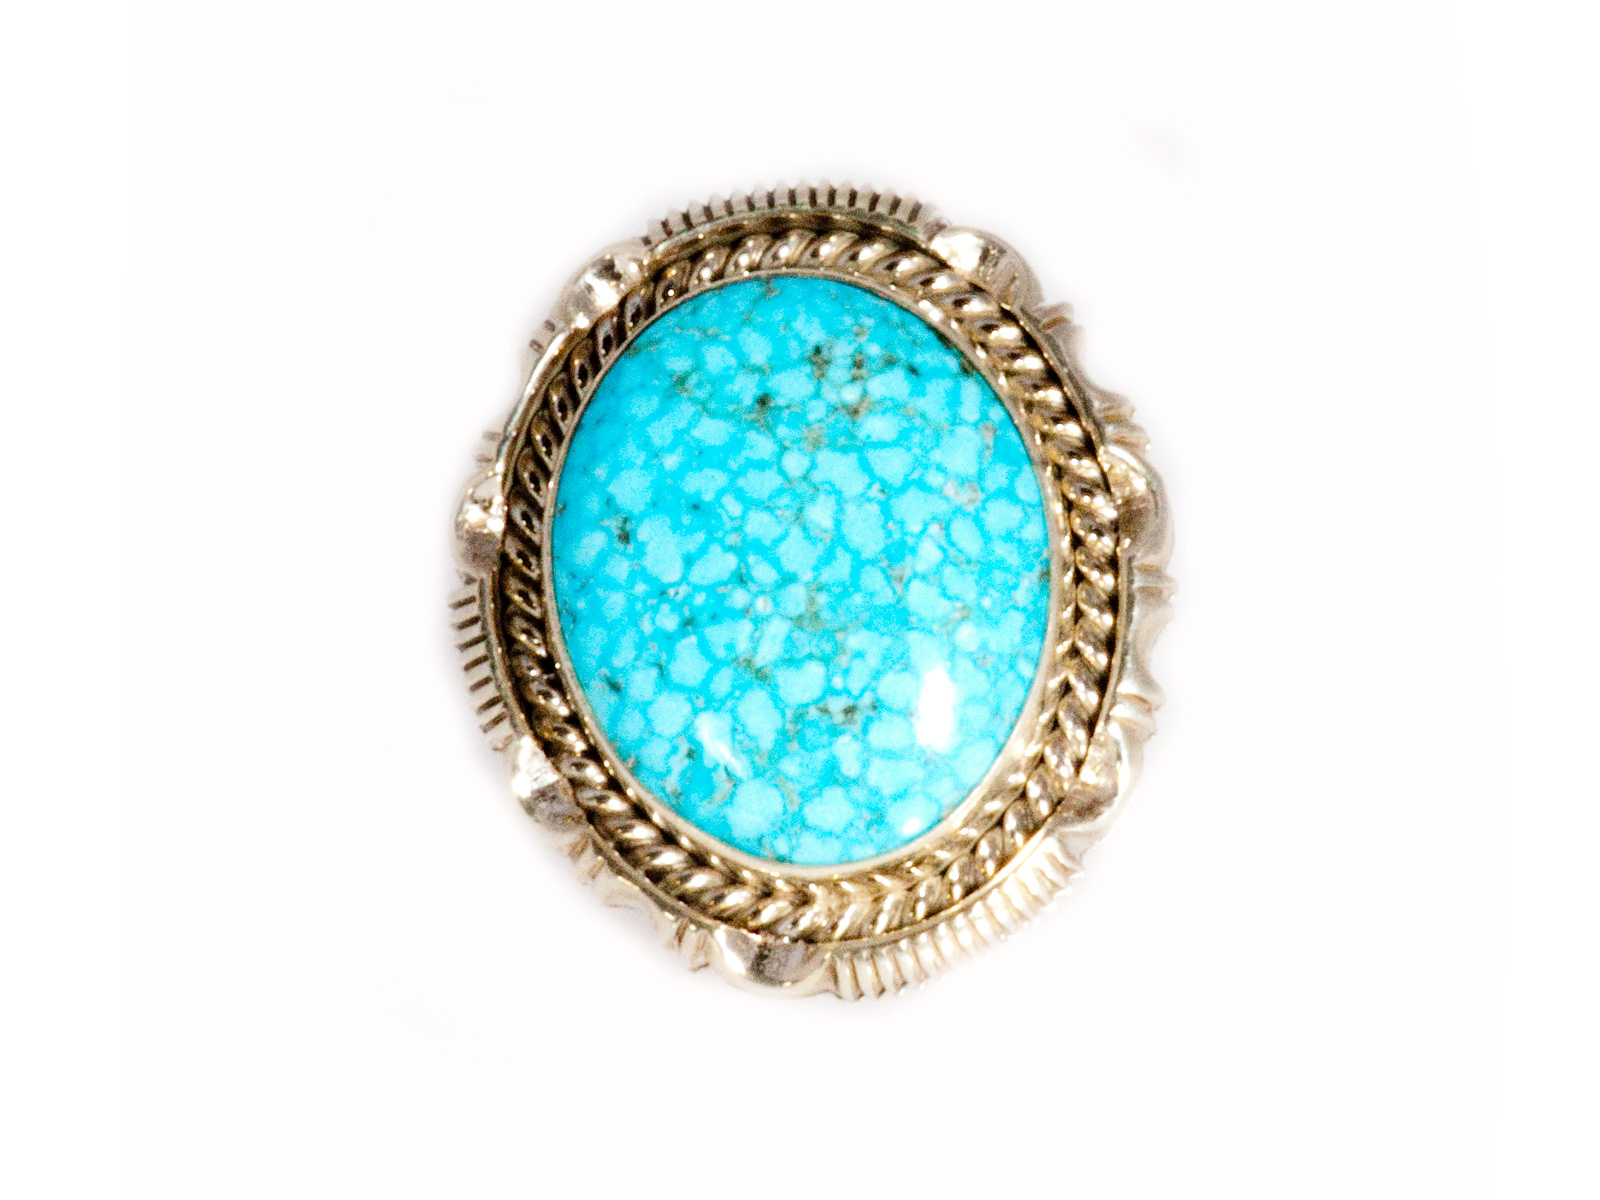 Spiderweb Kingman Turquoise Ring By Artie Yellowhorse